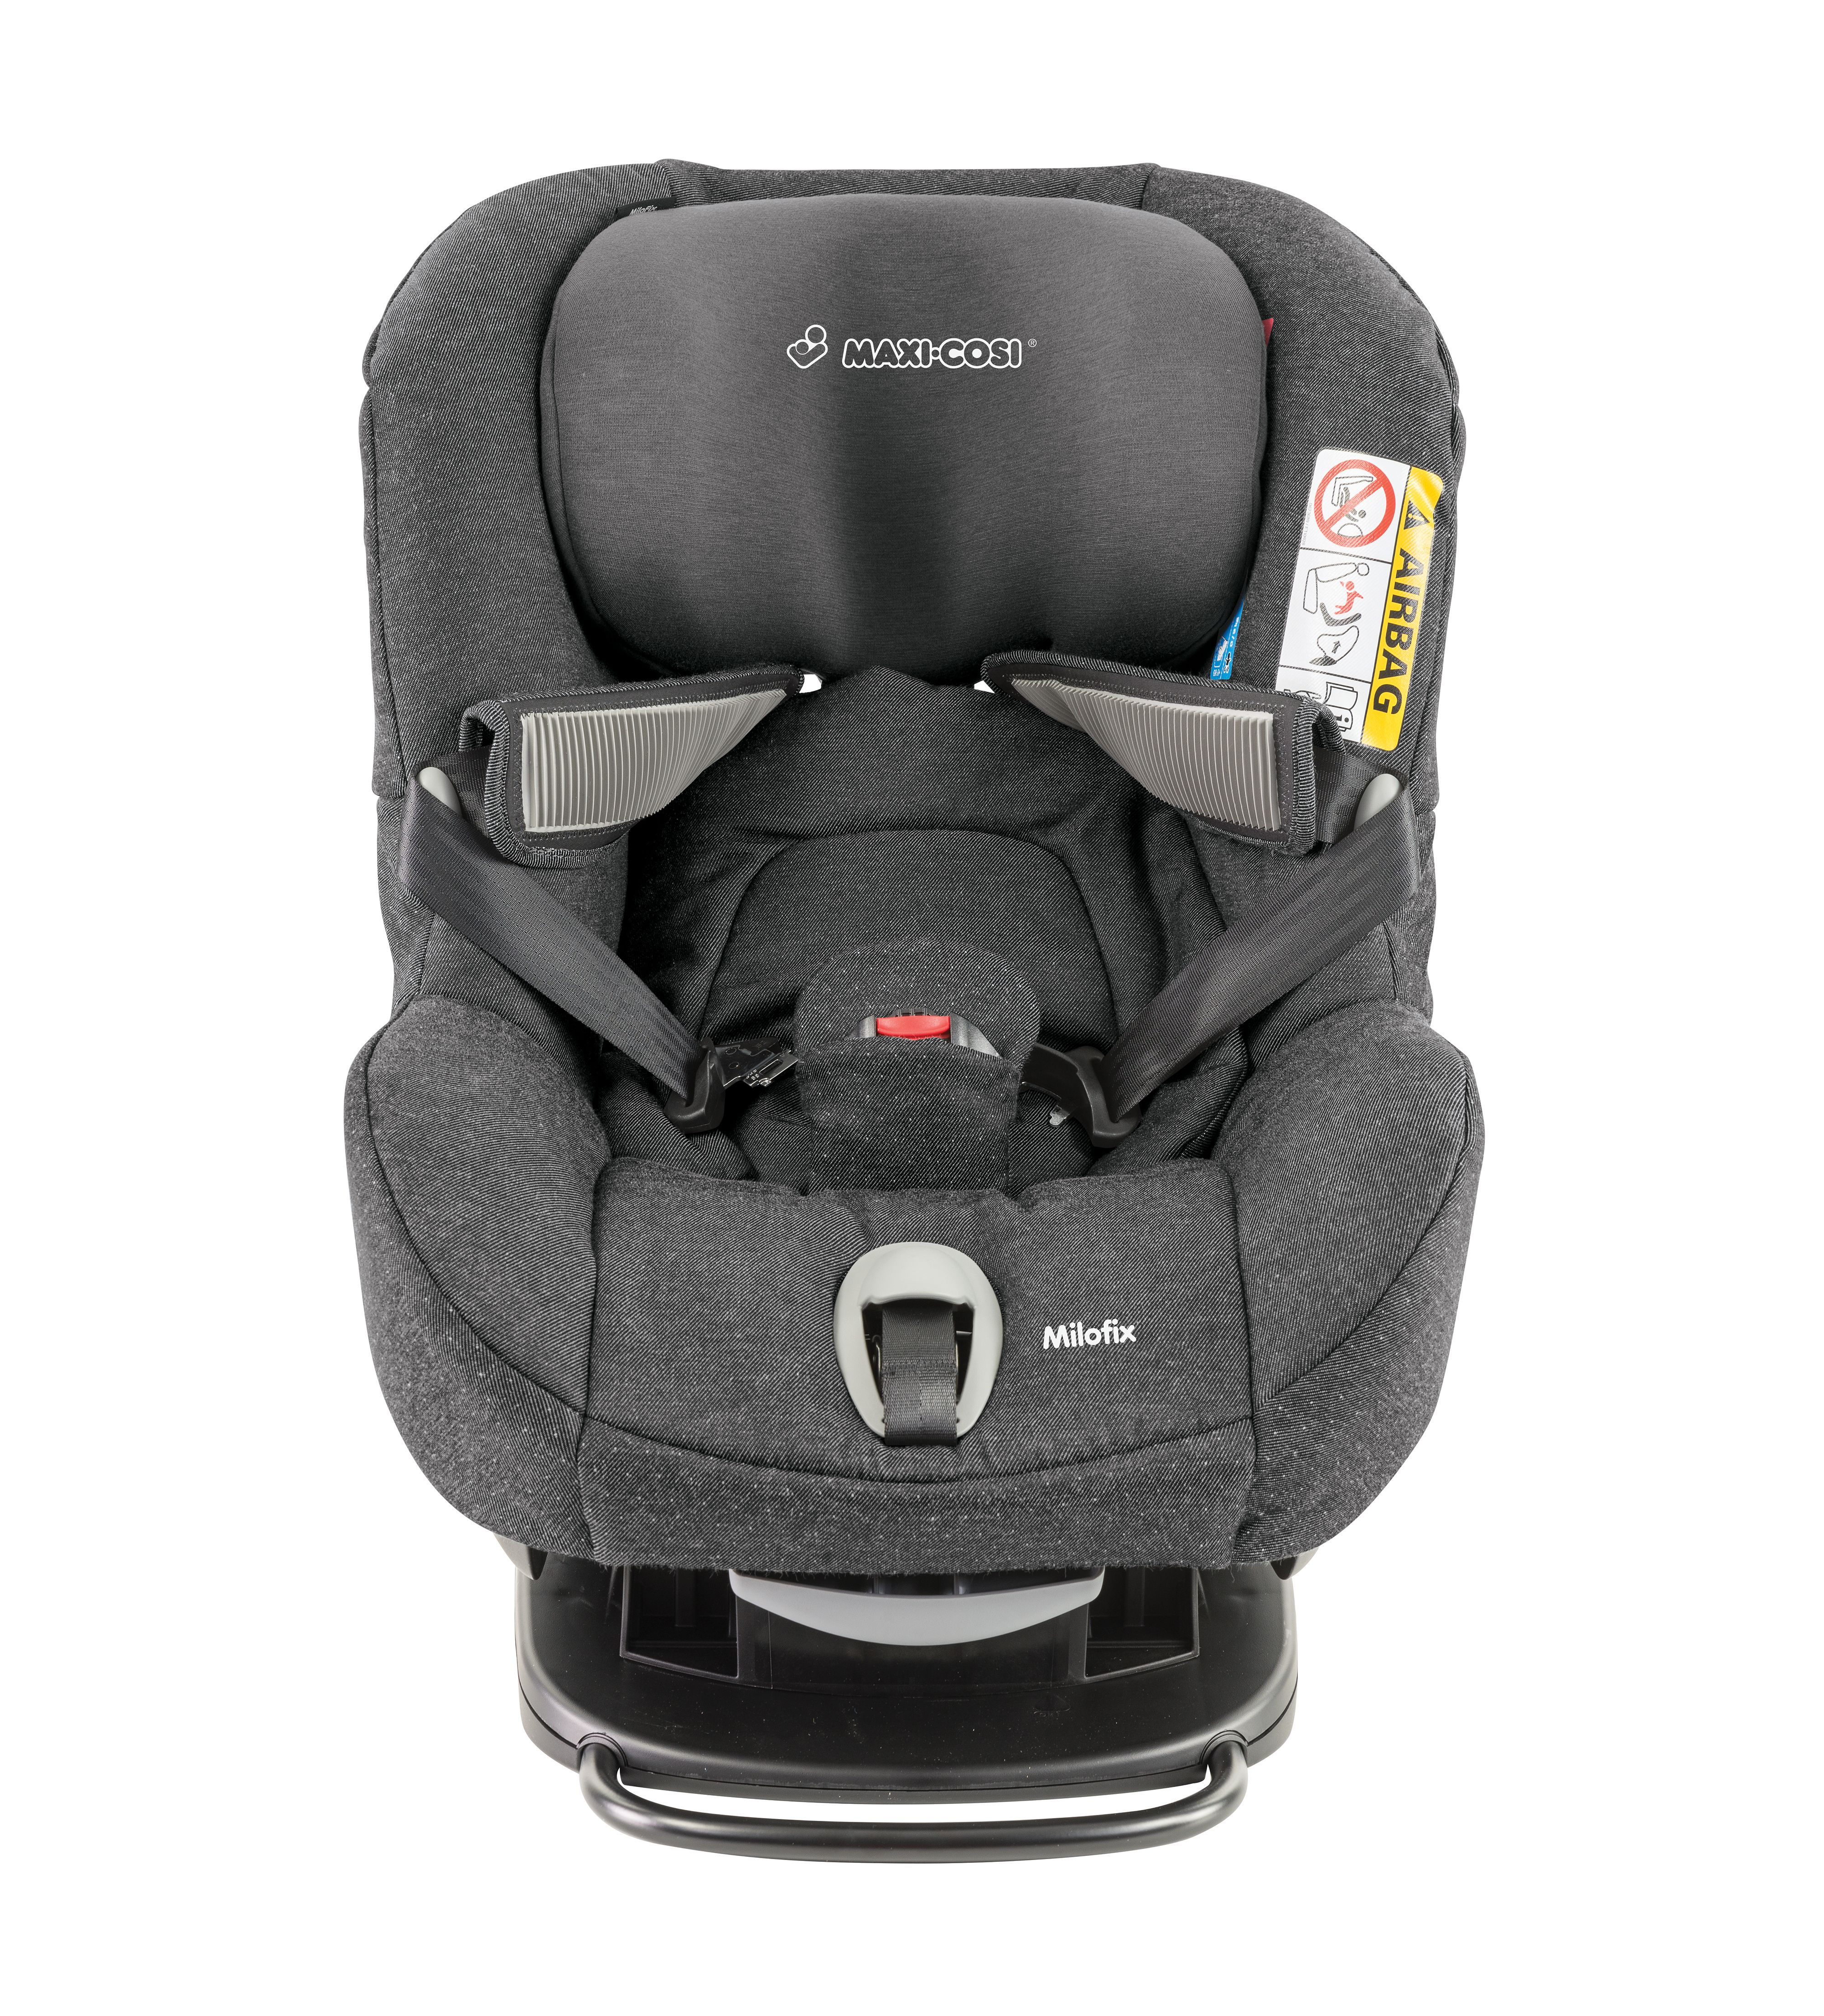 maxi cosi child car seat milofix 2018 sparkling grey buy. Black Bedroom Furniture Sets. Home Design Ideas